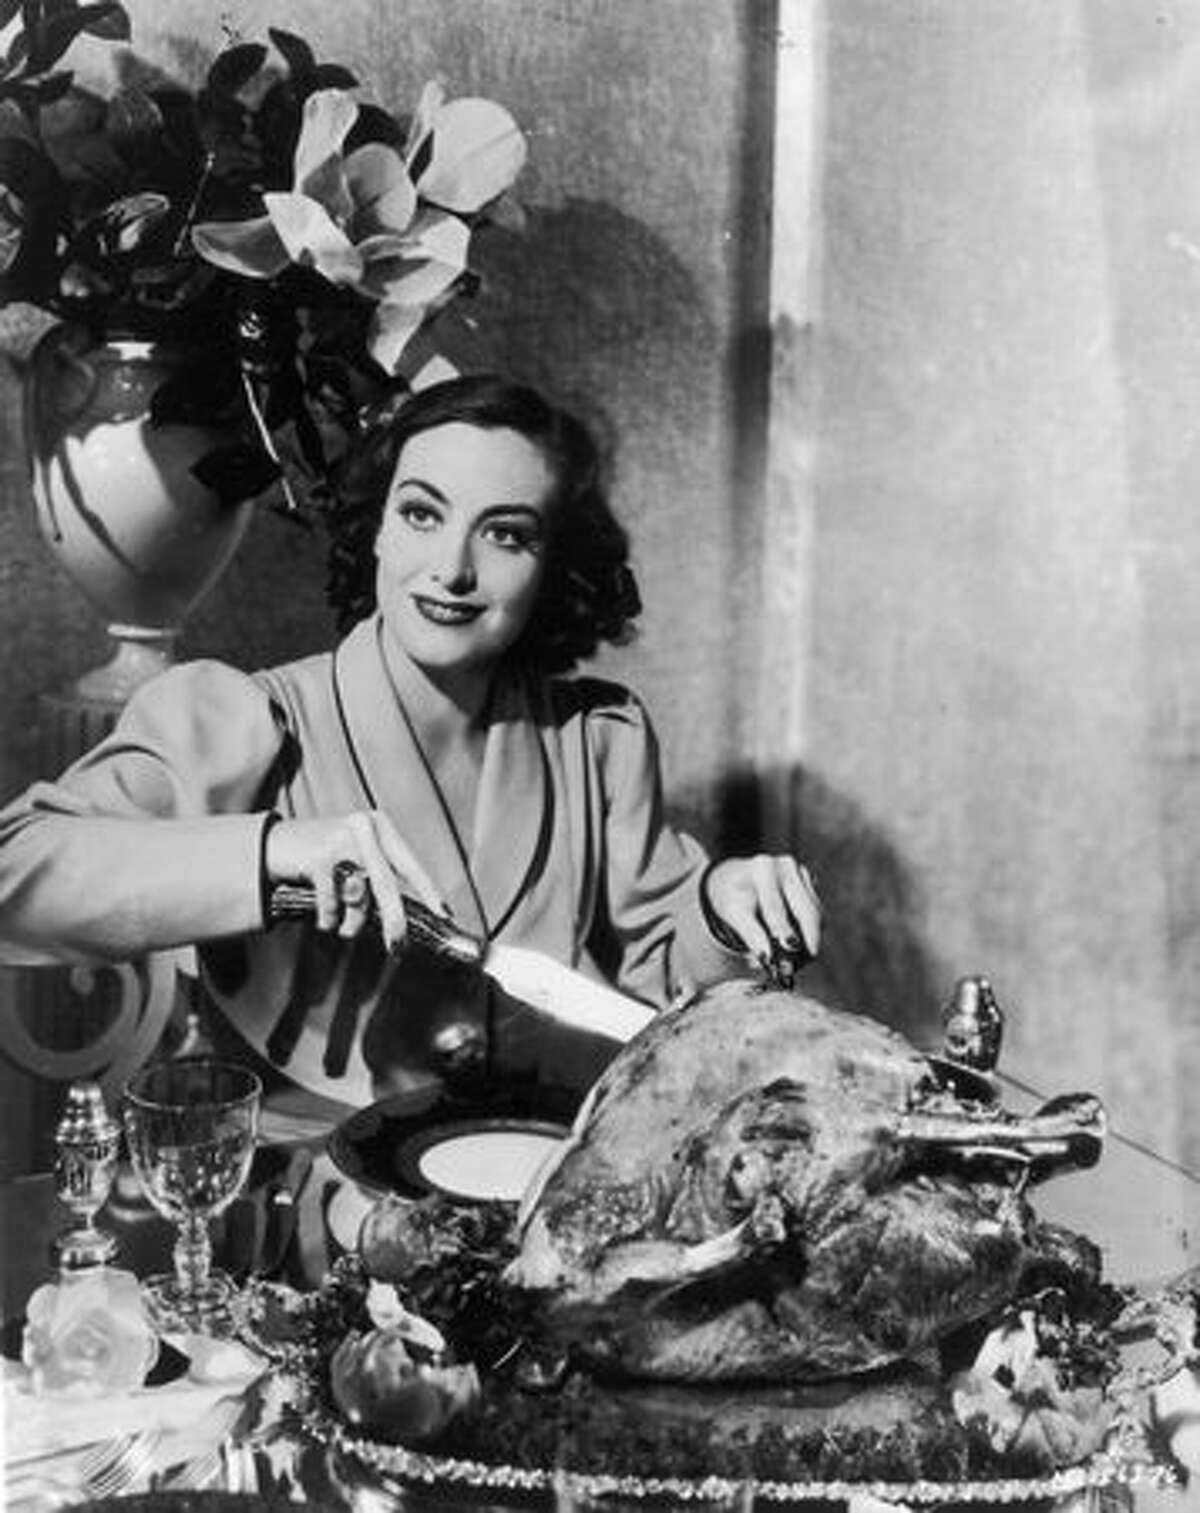 Circa 1930: American actress Joan Crawford (1908 - 1977) carves a huge Thanksgiving turkey for a publicity shot. Oddly, movie stars were often requested to strike this pose by their publicists.